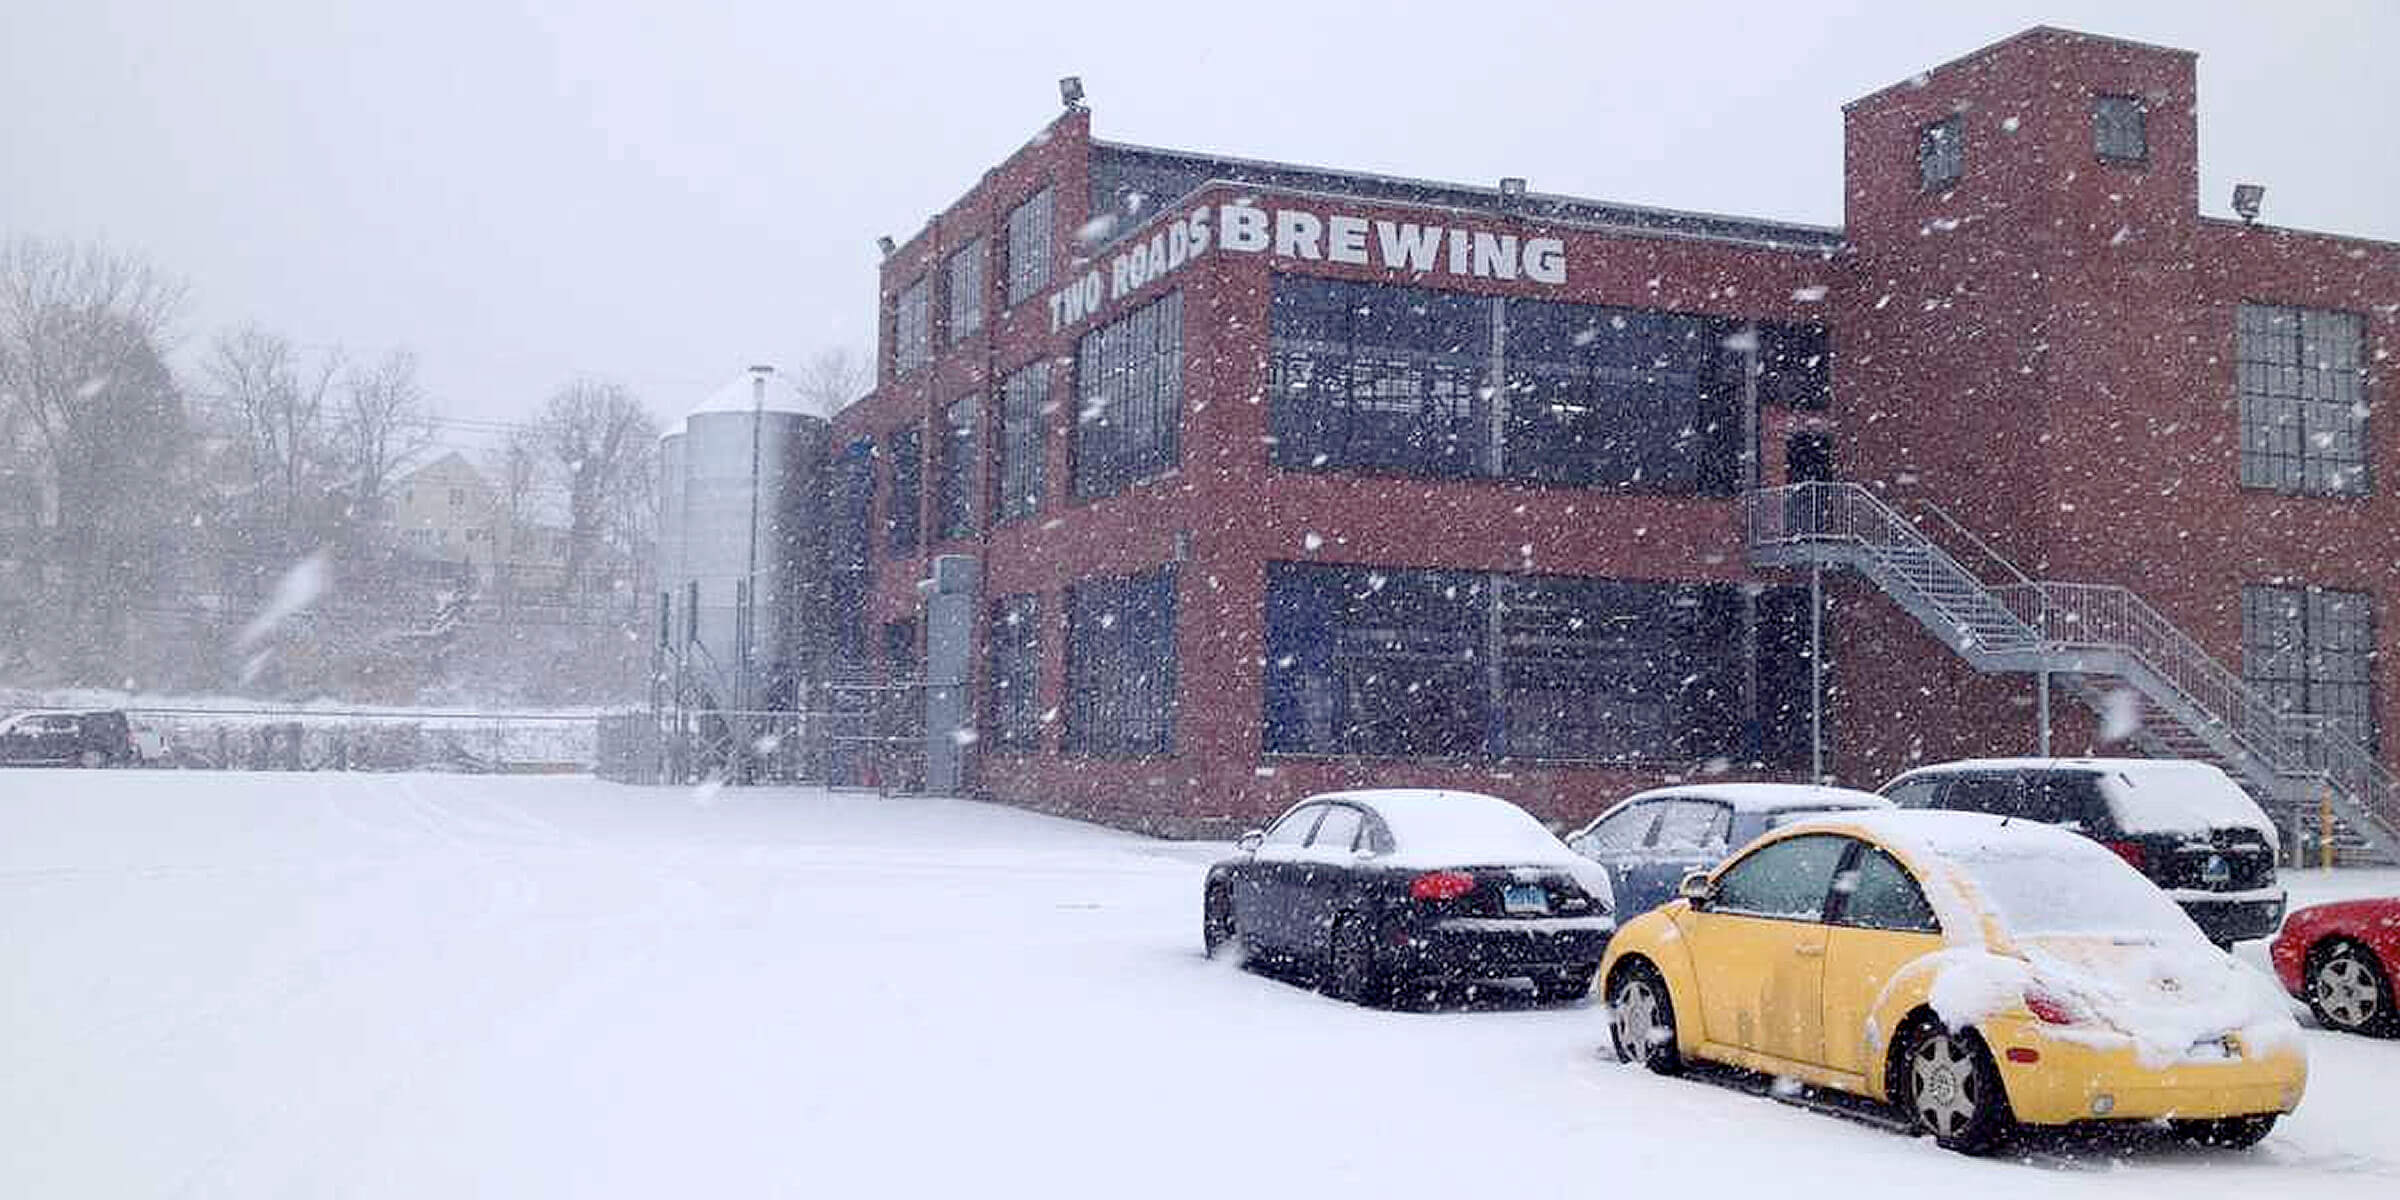 Outside Two Roads Brewing Co in Stratford, Connecticut